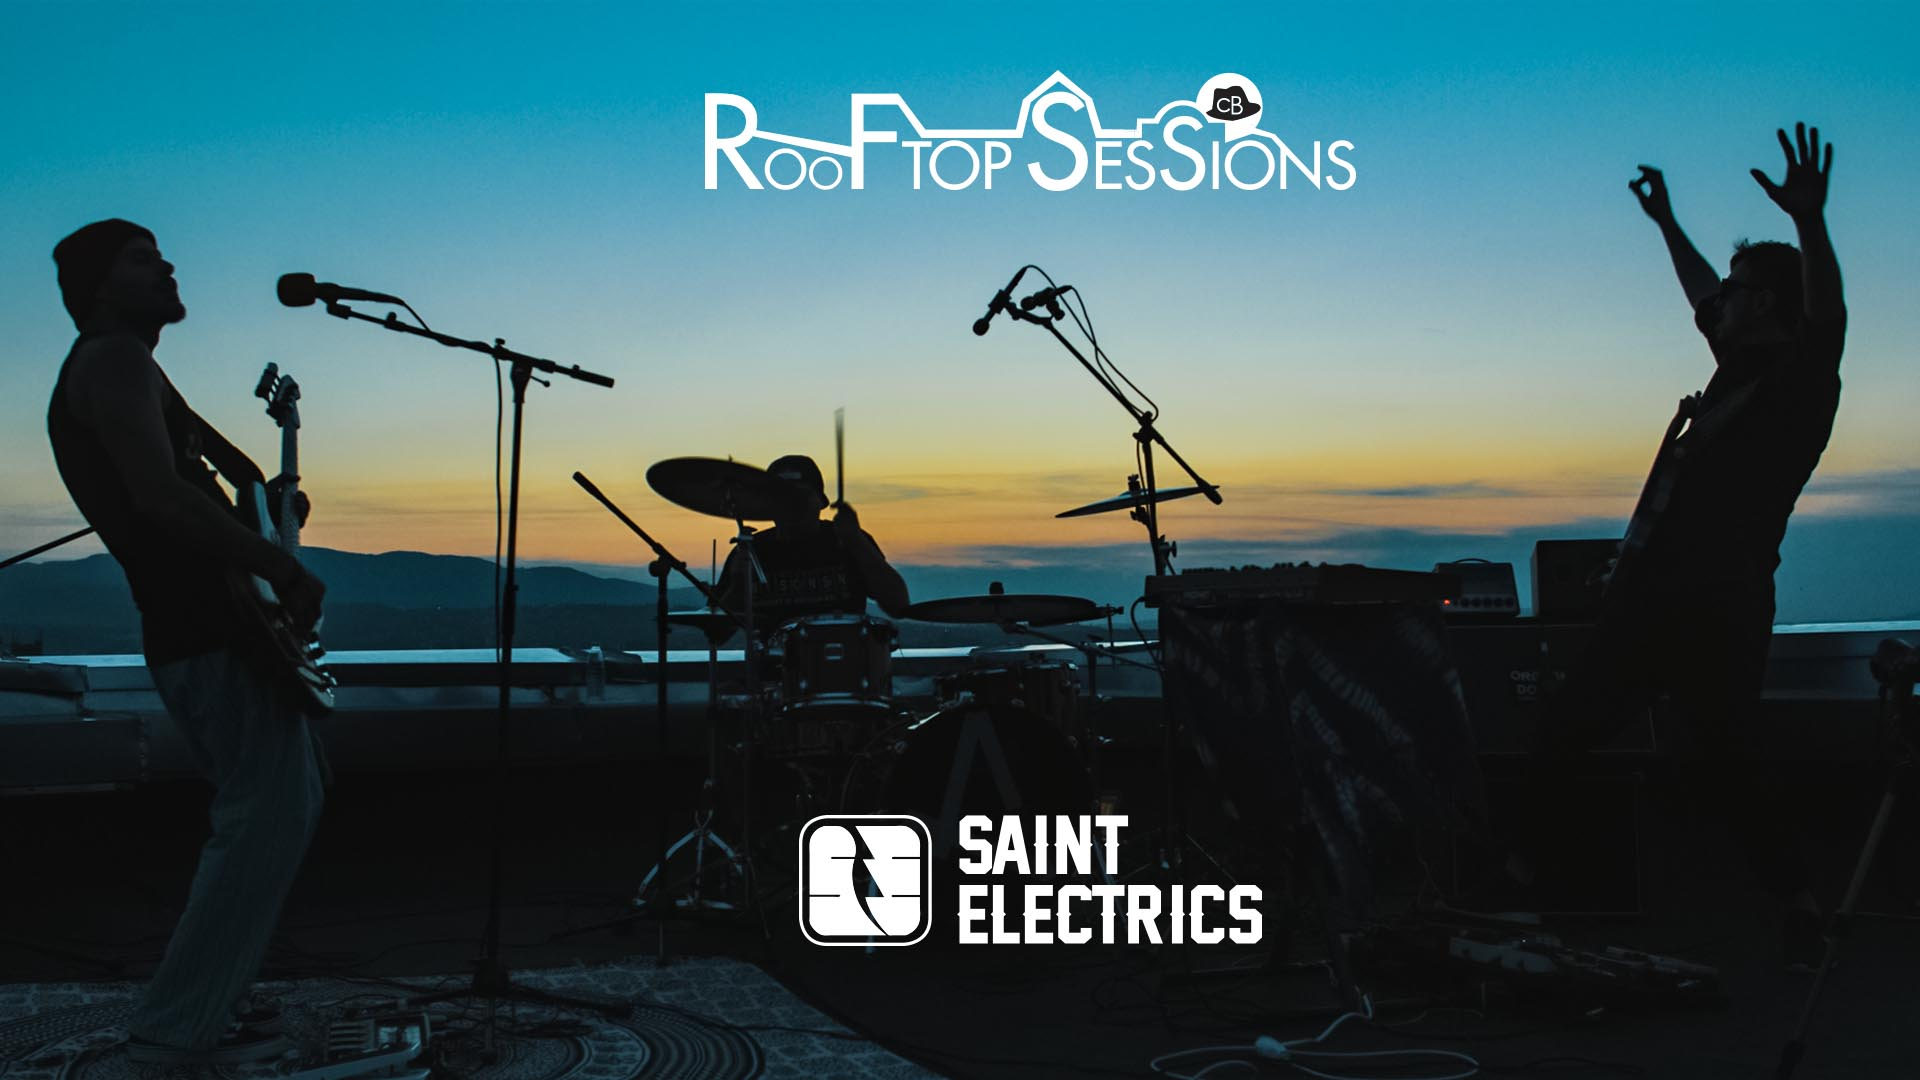 CB Rooftop Sessions - Saint Electrics